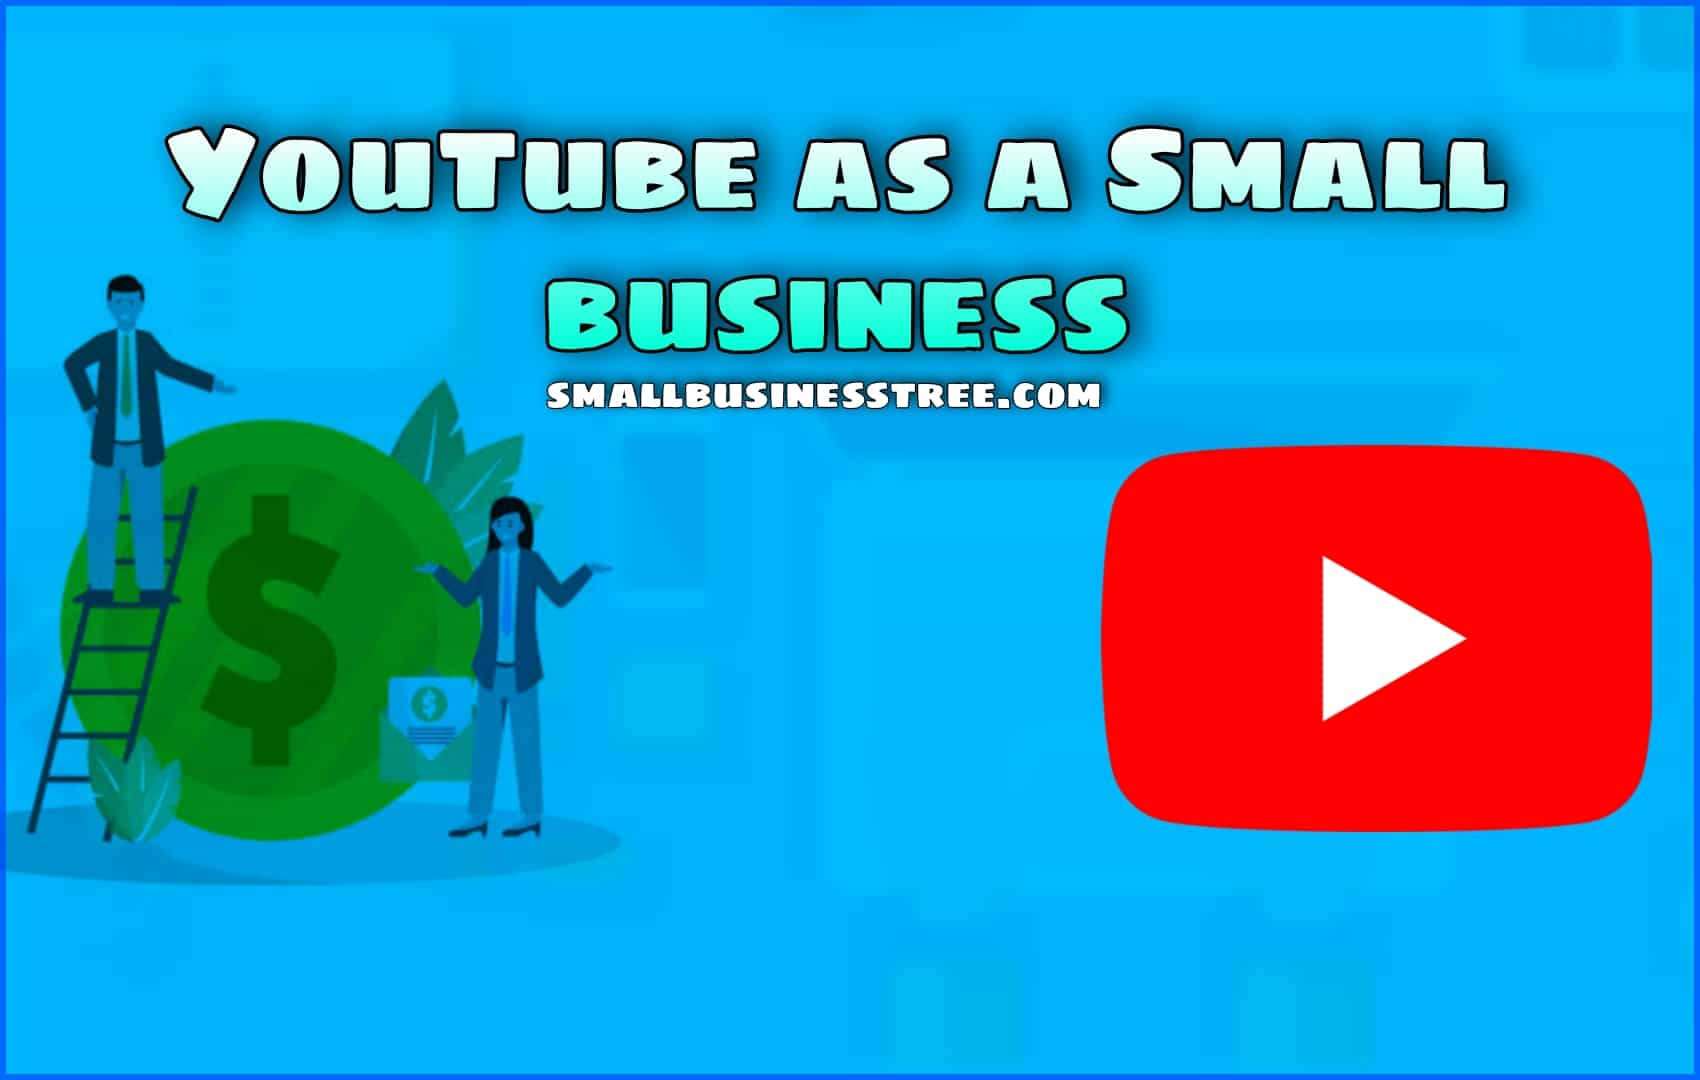 Youtube as a Small Business